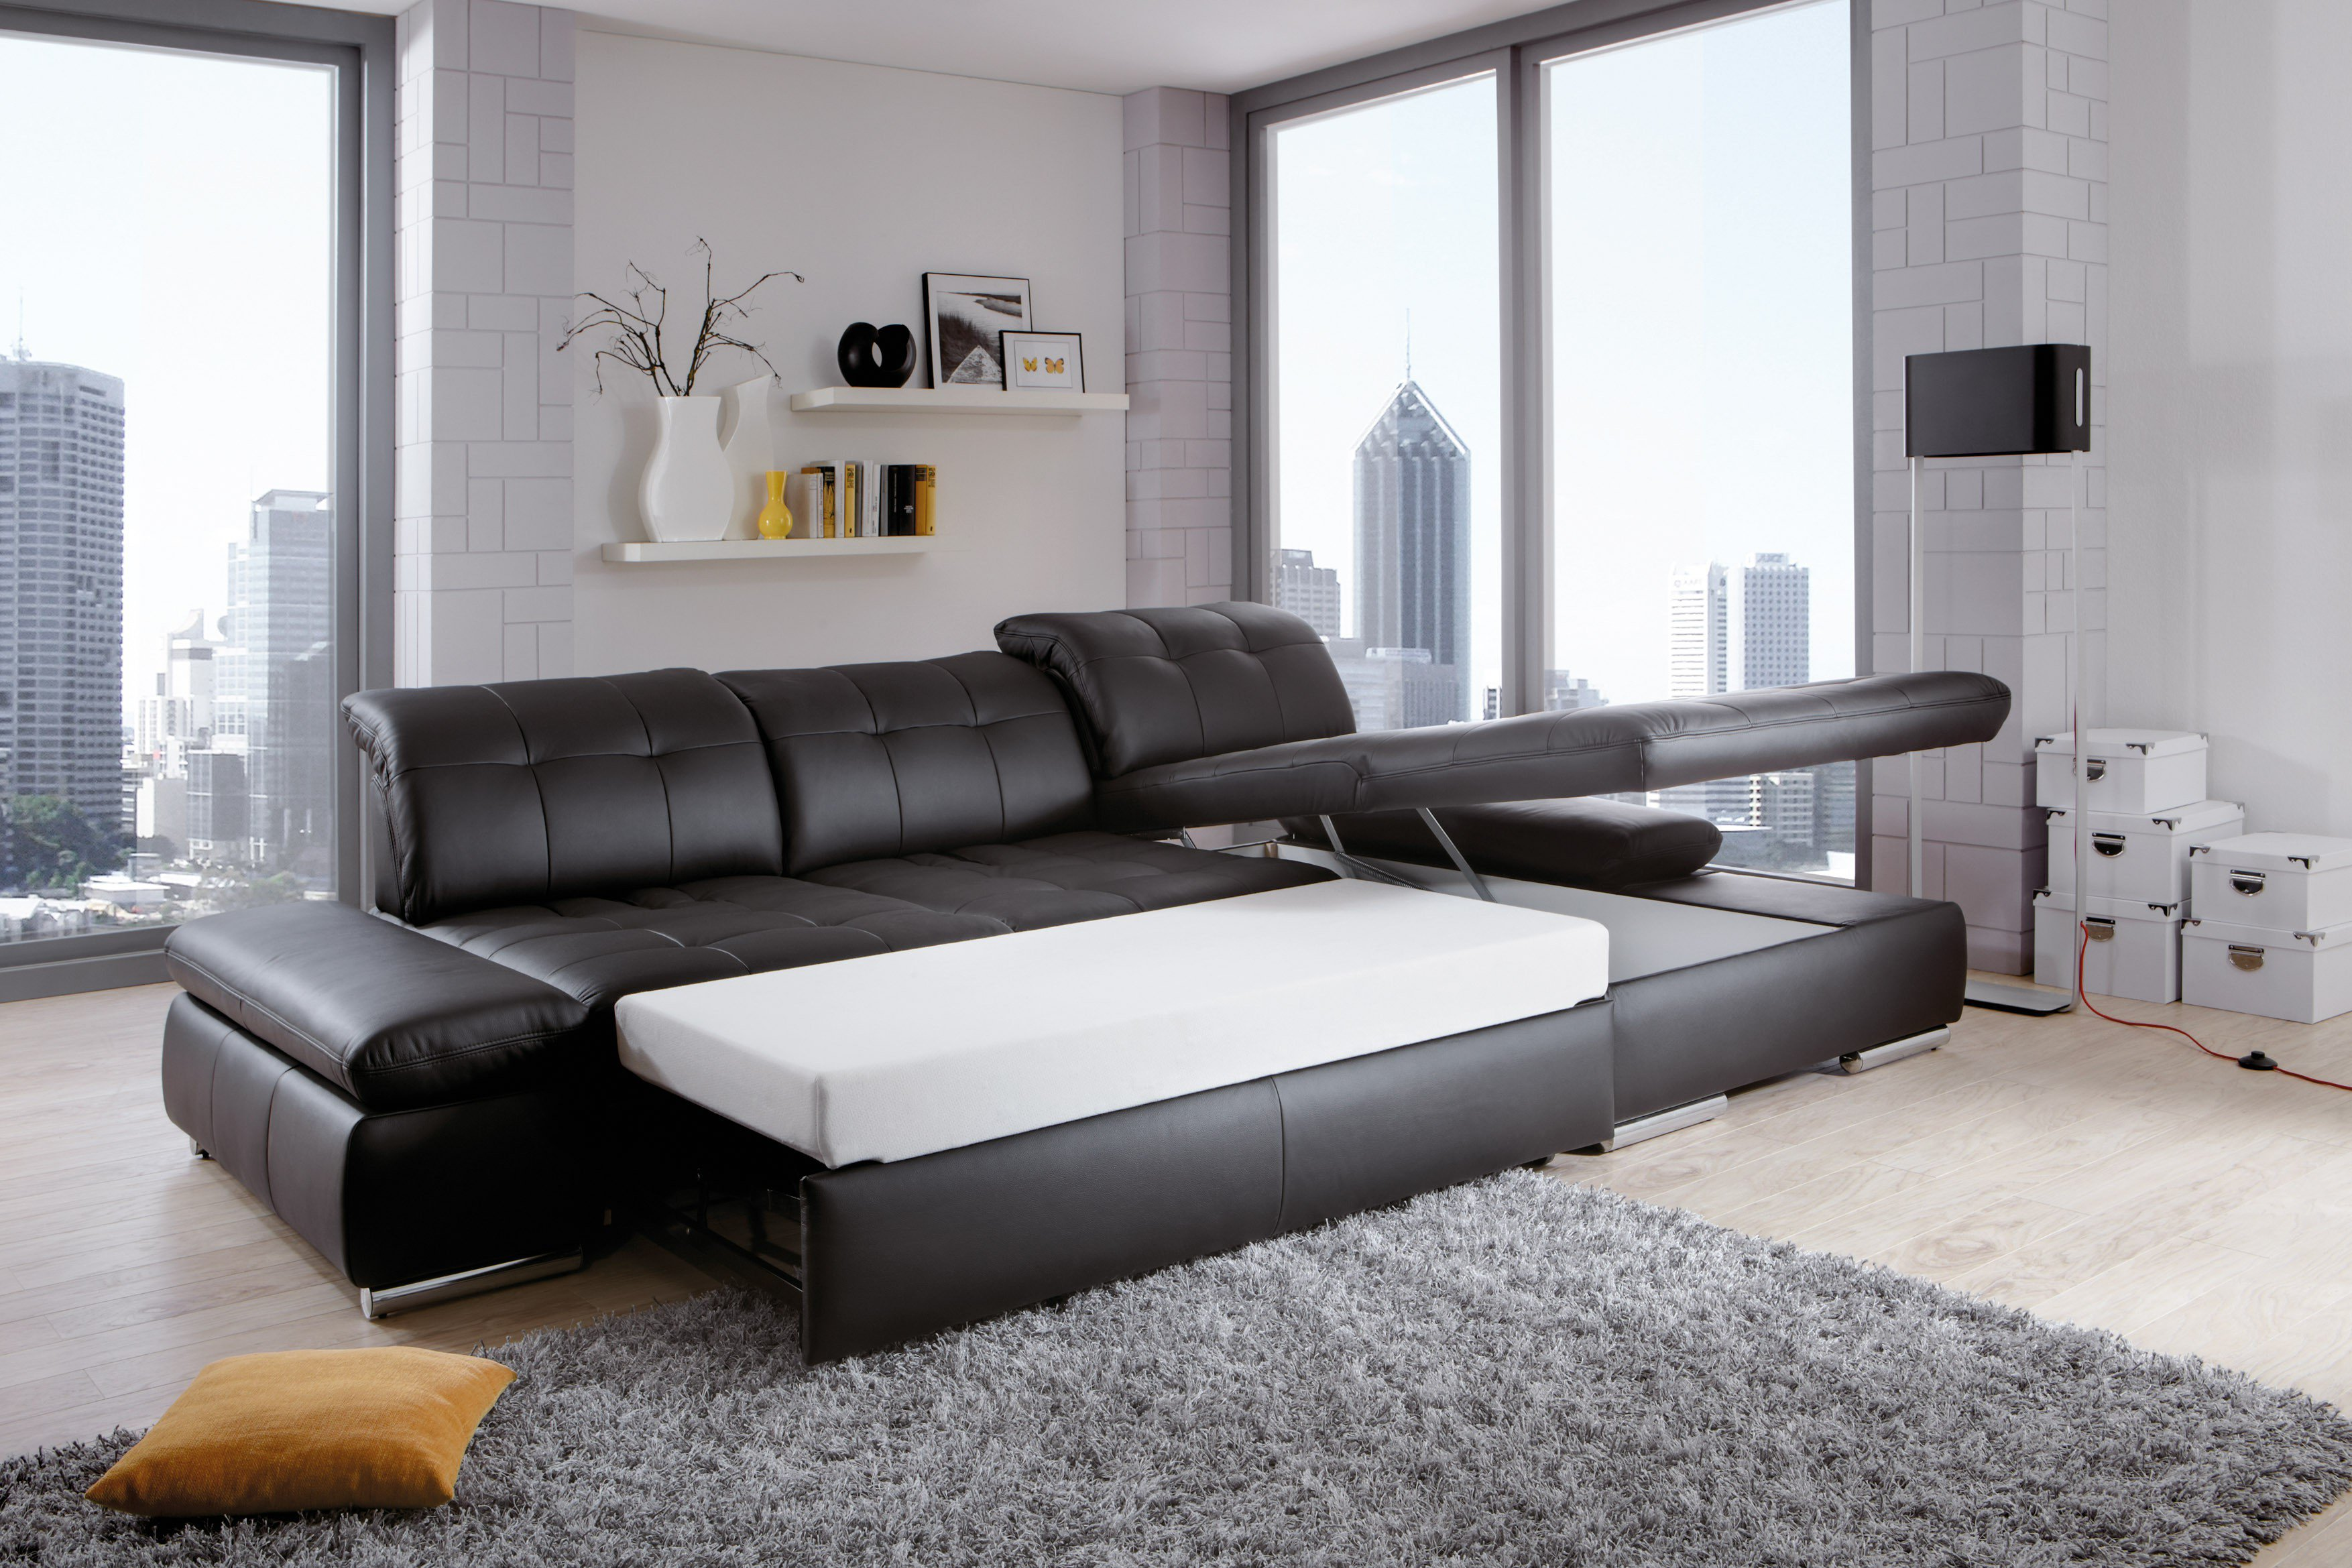 ecksofa mit schlaffunktion poco dom ne inspirierendes design f r wohnm bel. Black Bedroom Furniture Sets. Home Design Ideas